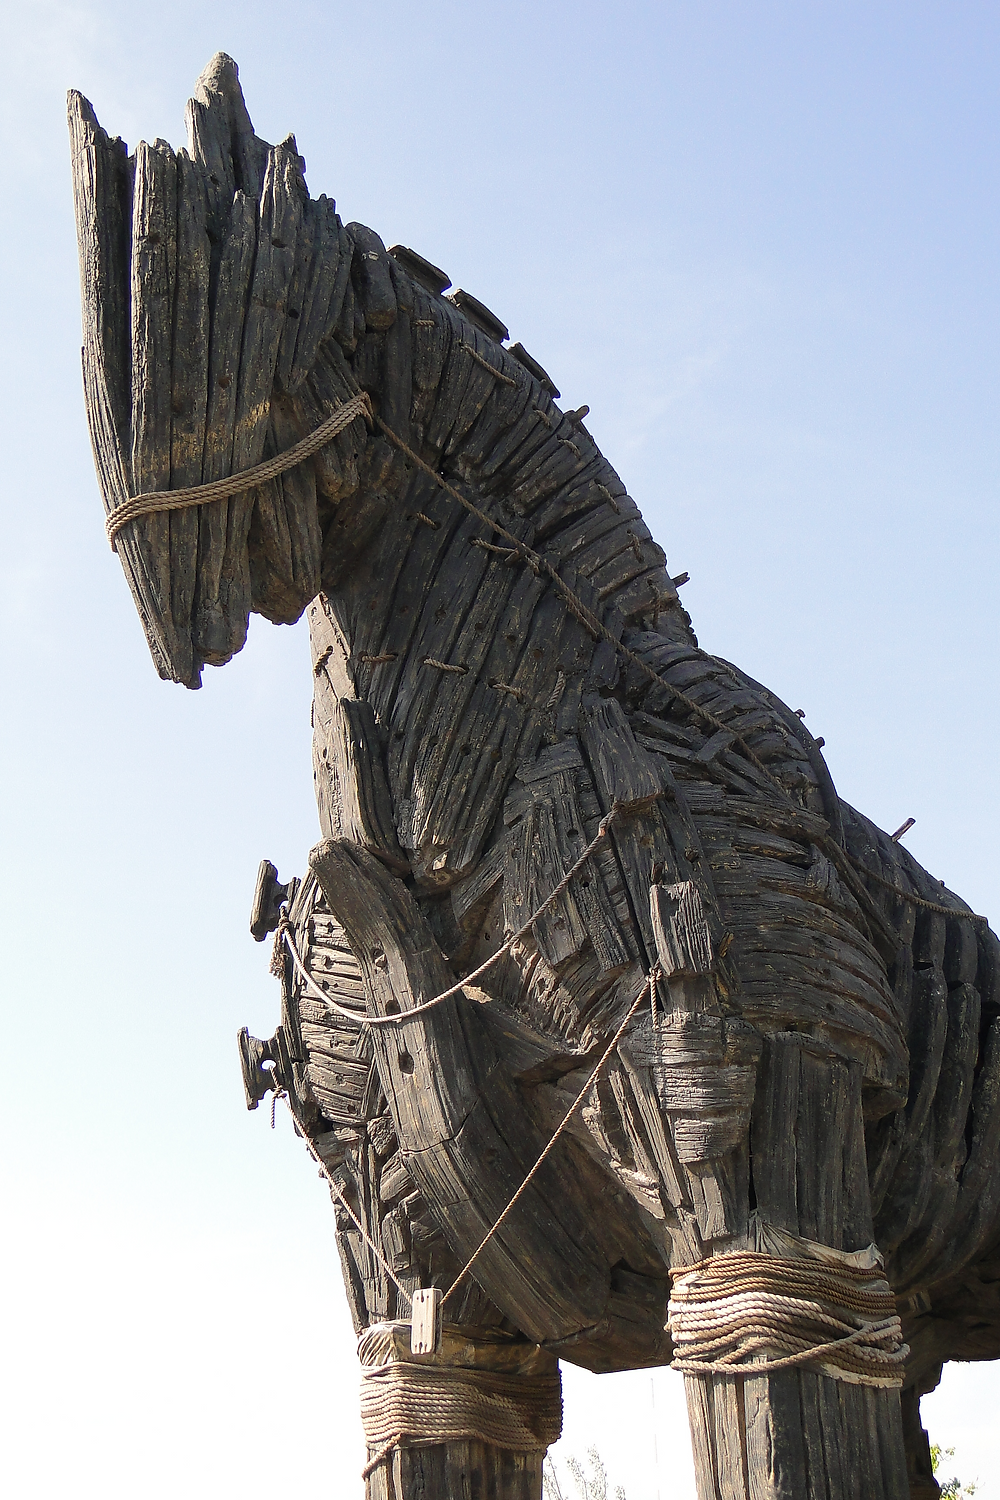 Giant wooden replica of a trojan horse.